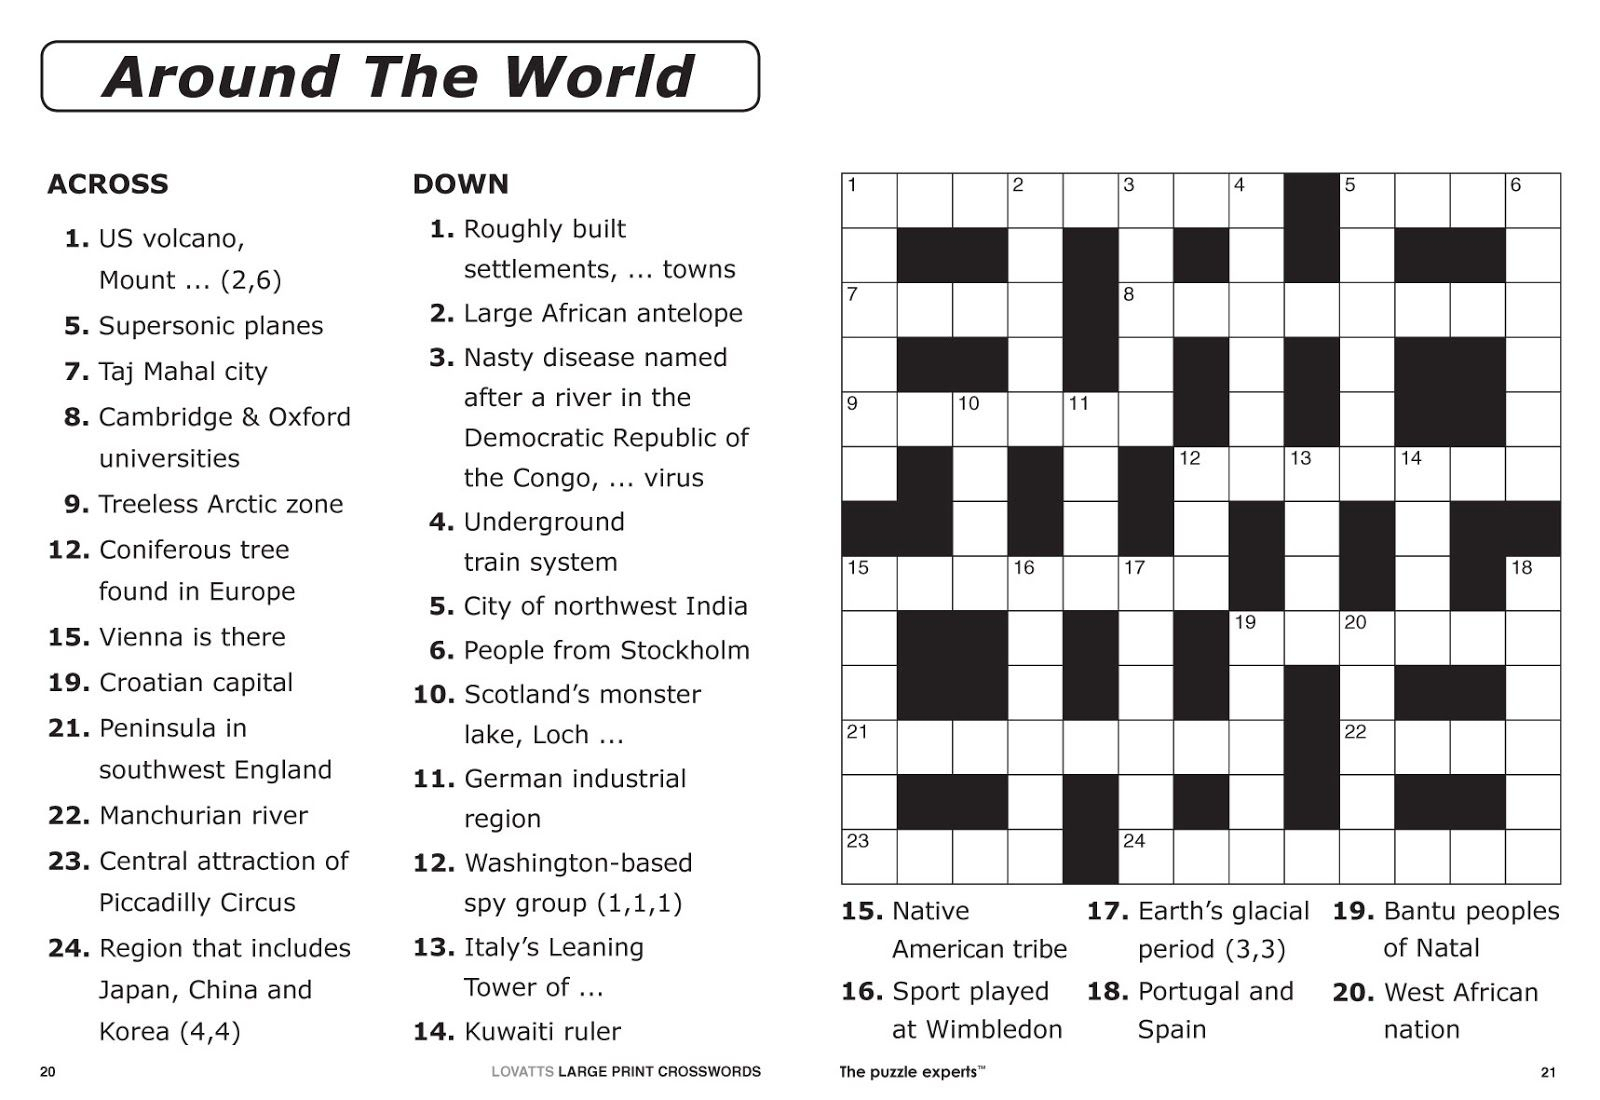 Free Printable Large Print Crossword Puzzles | M3U8 - Printable Crosswords For 15 Year Olds